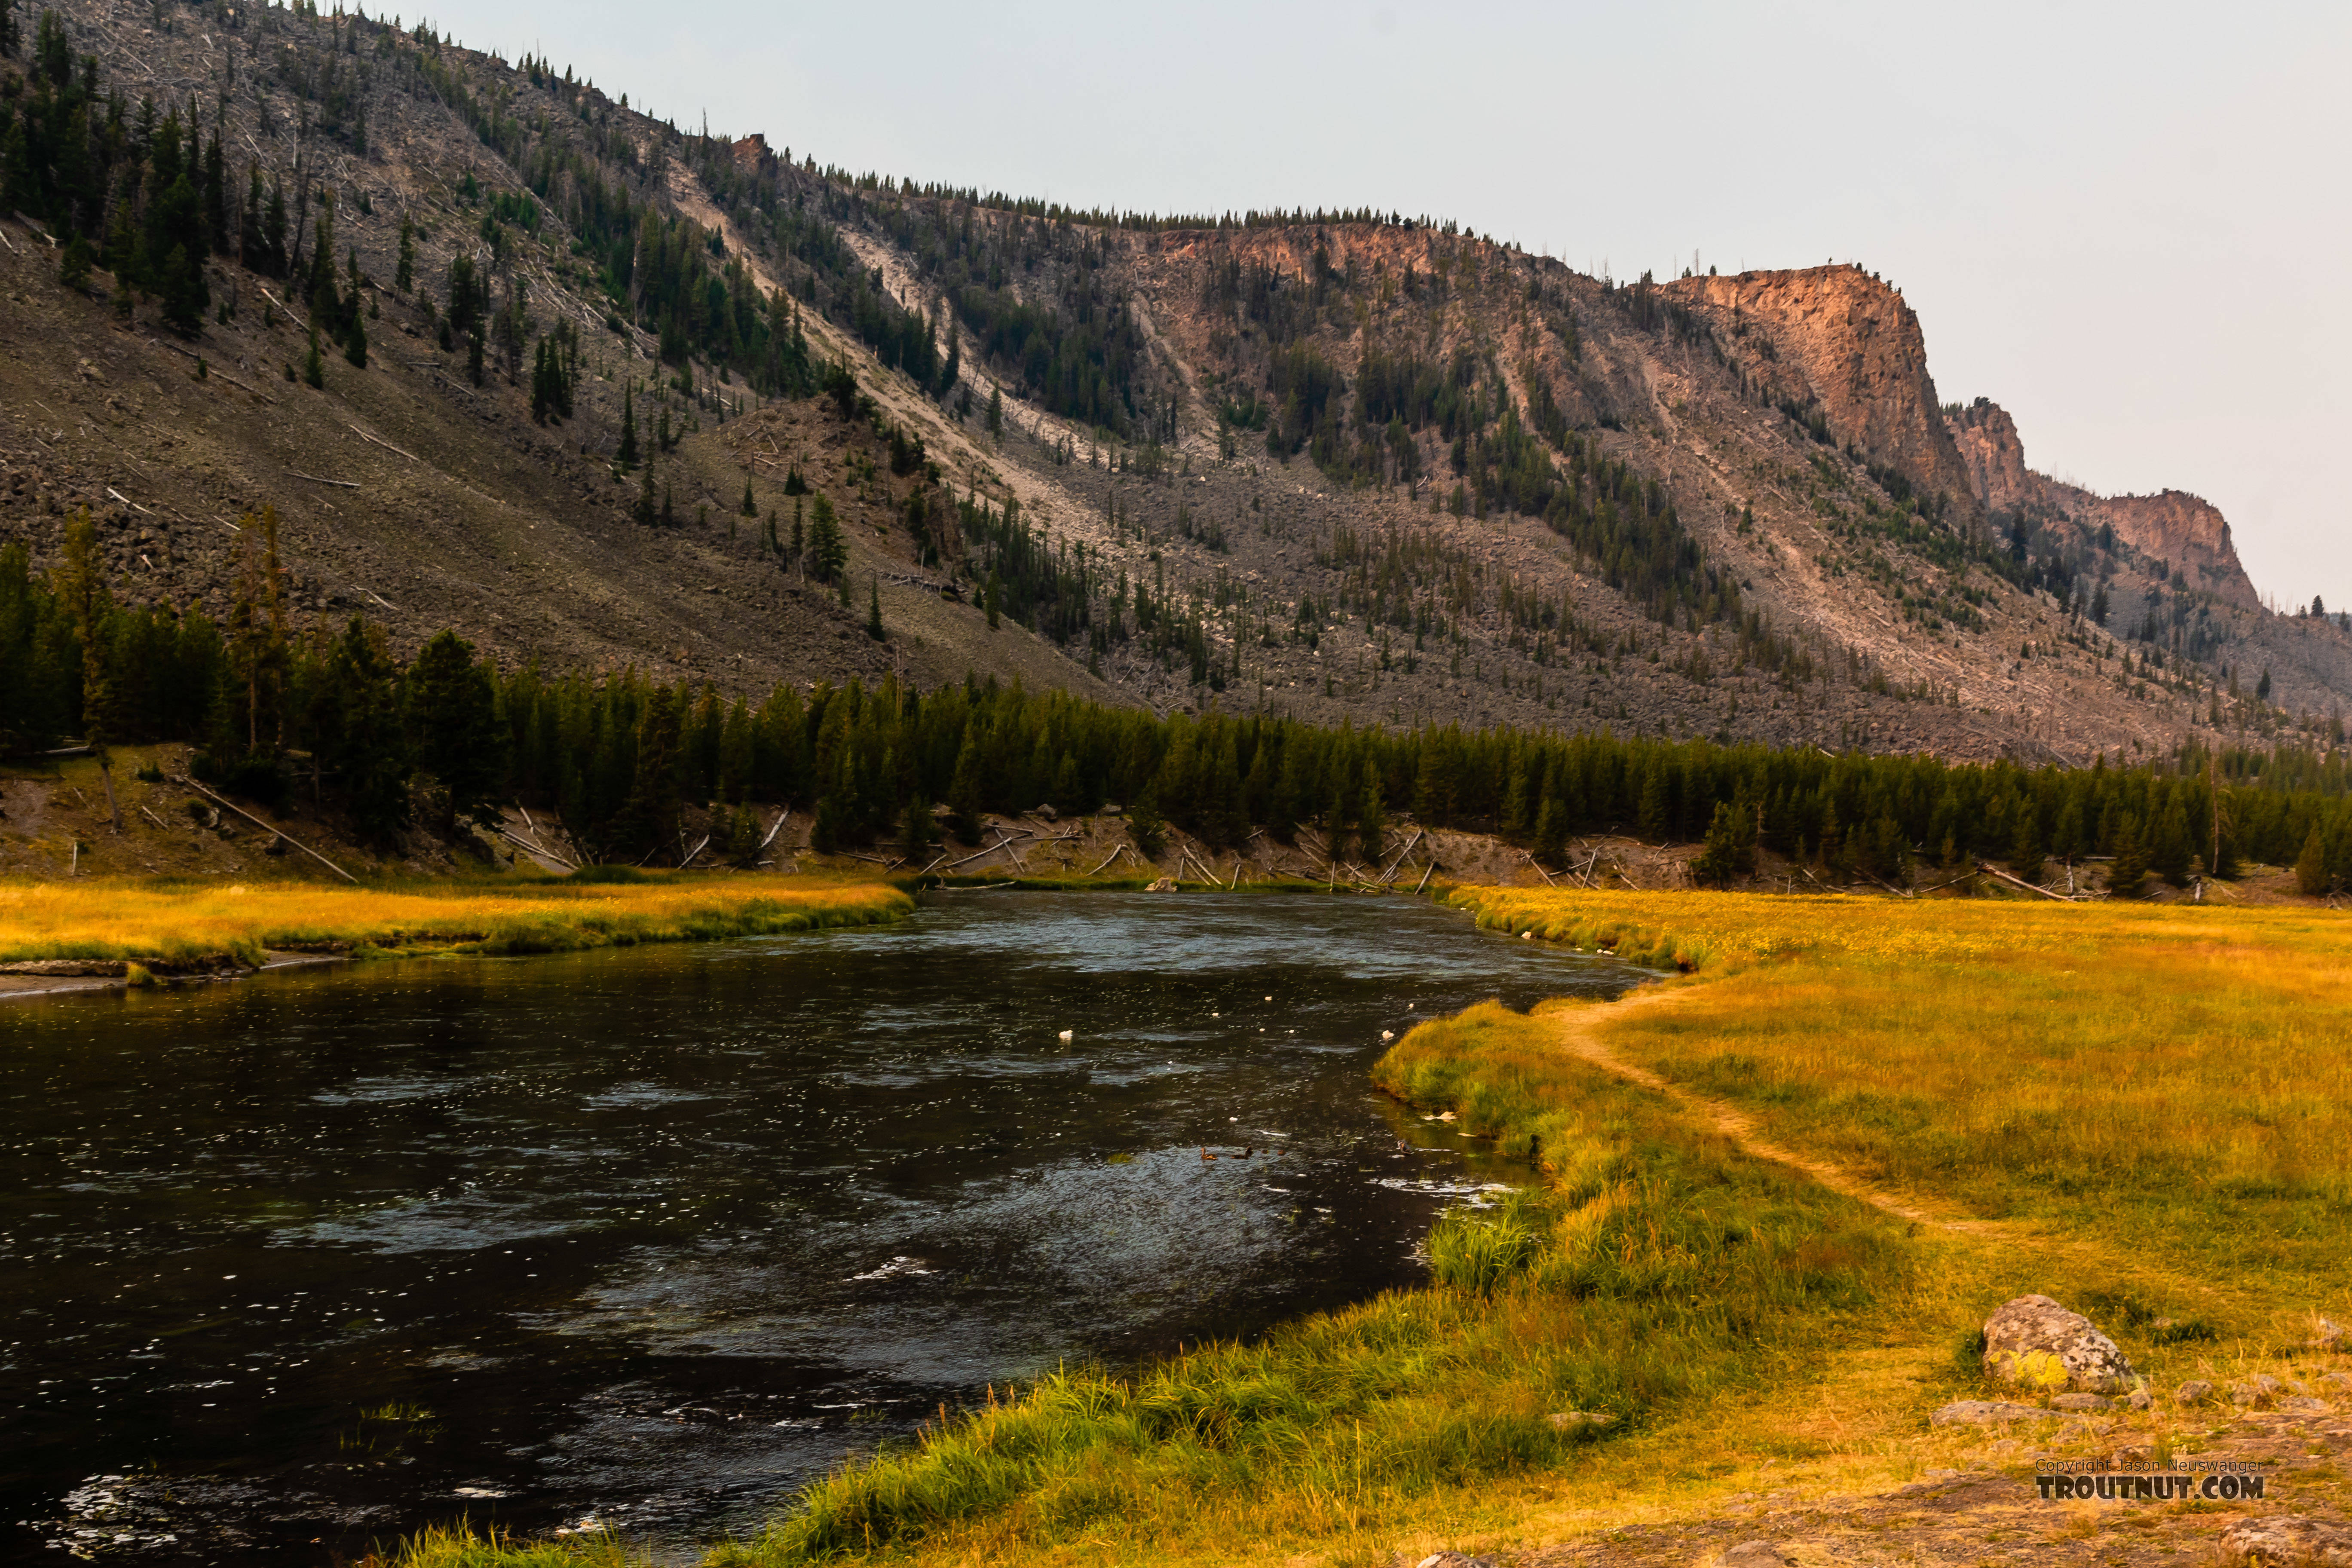 From the Madison River in Wyoming.